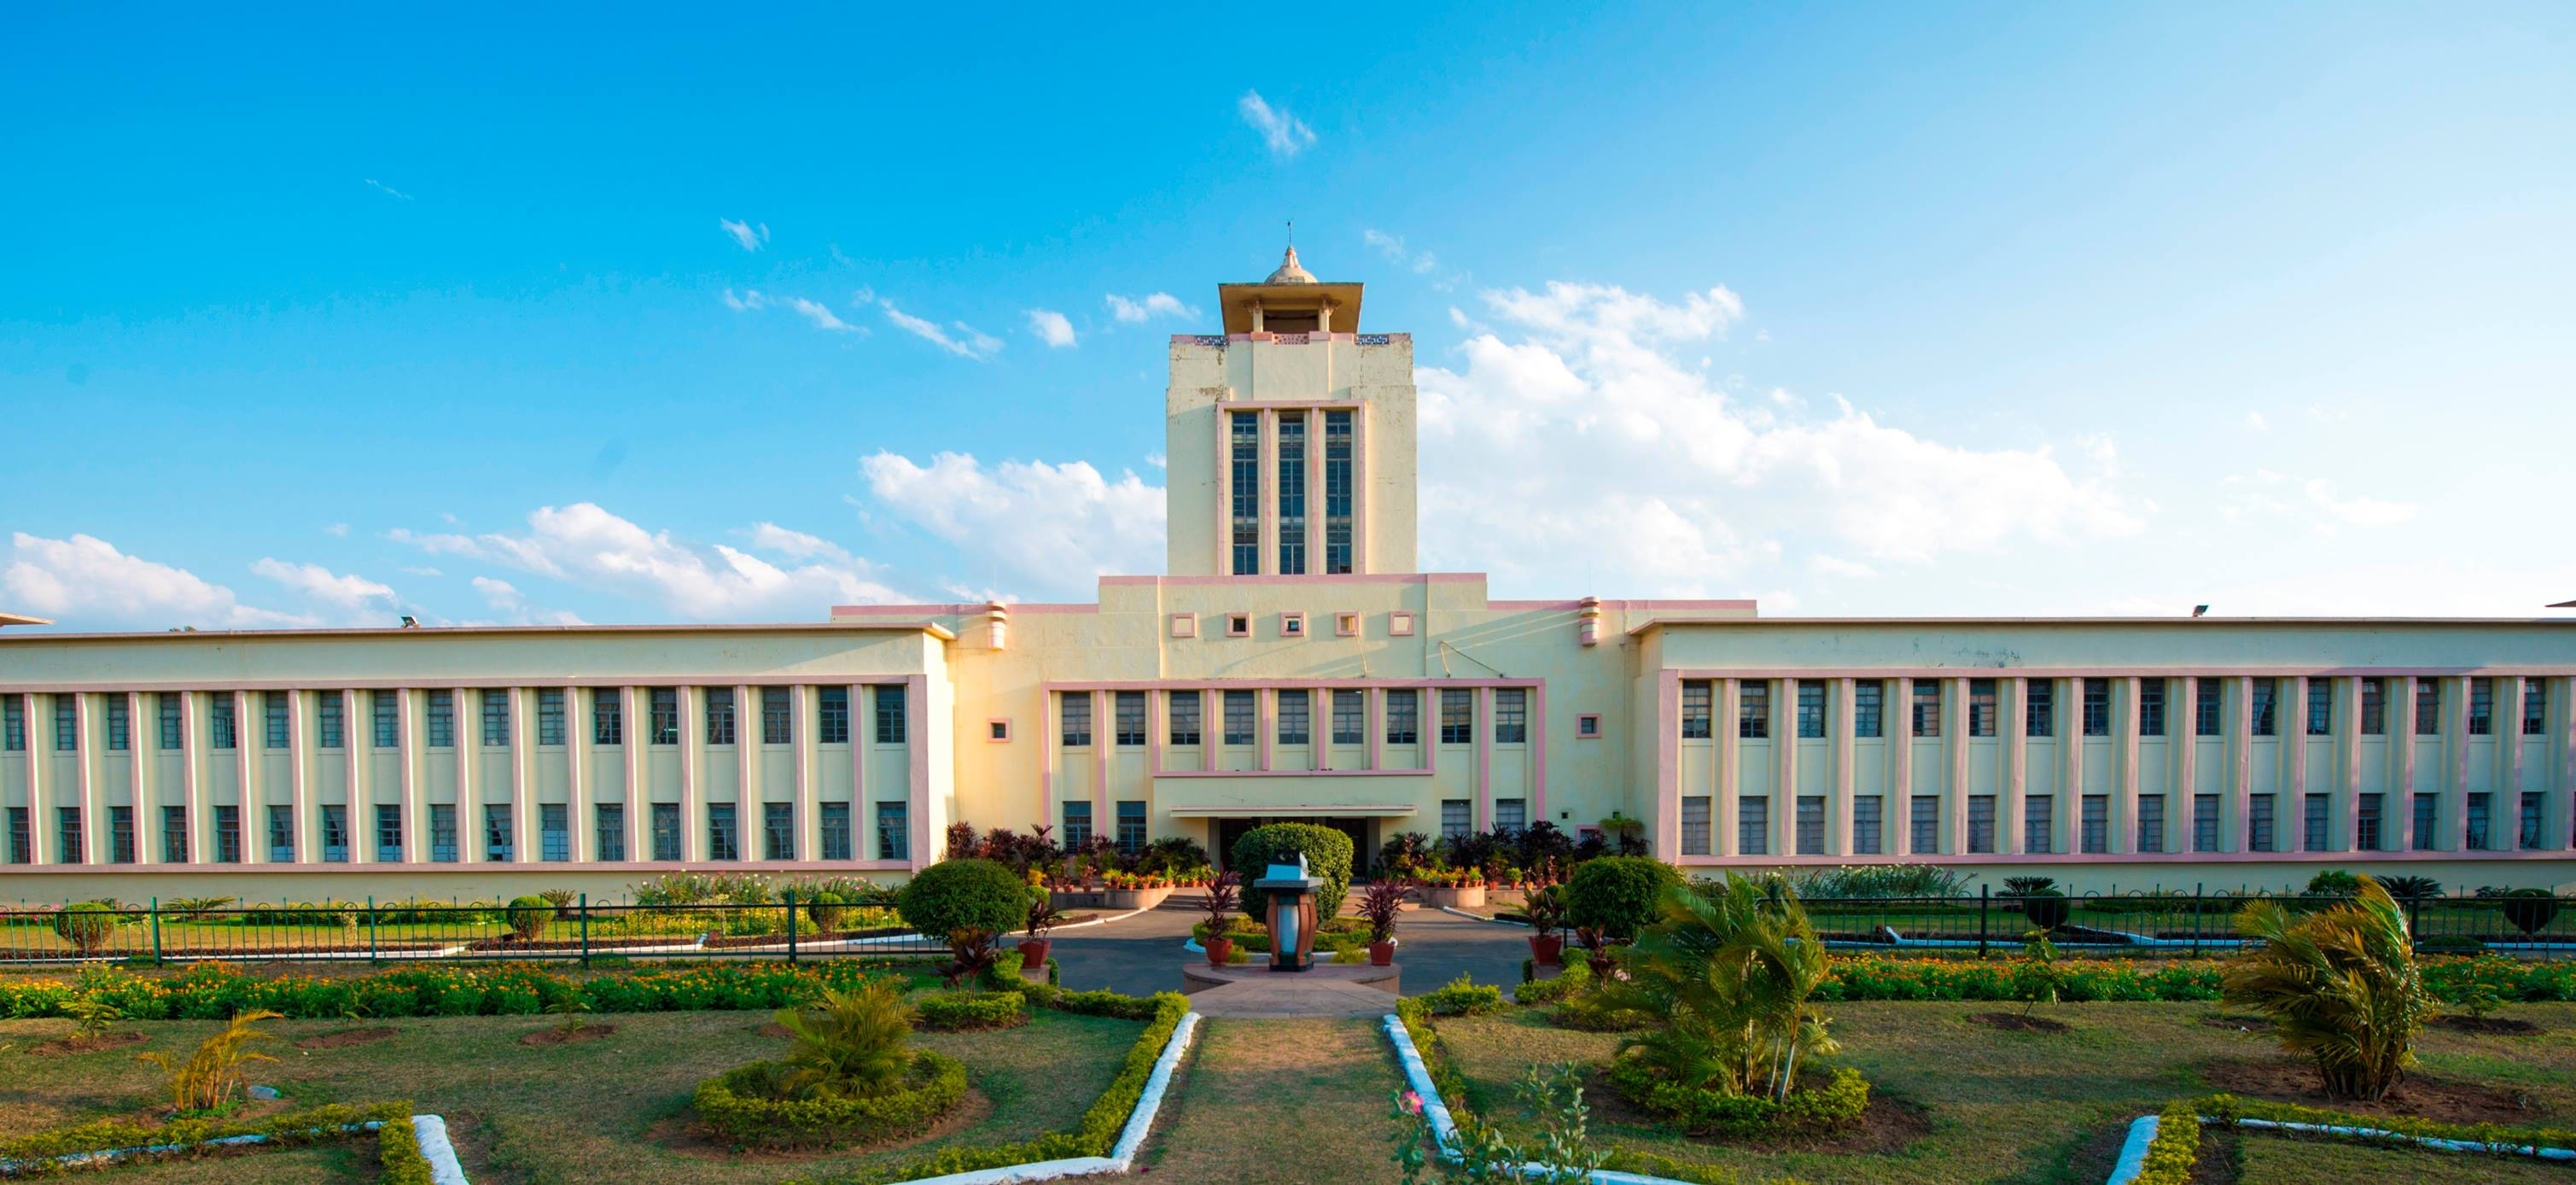 Birla Institute of Technology Campus